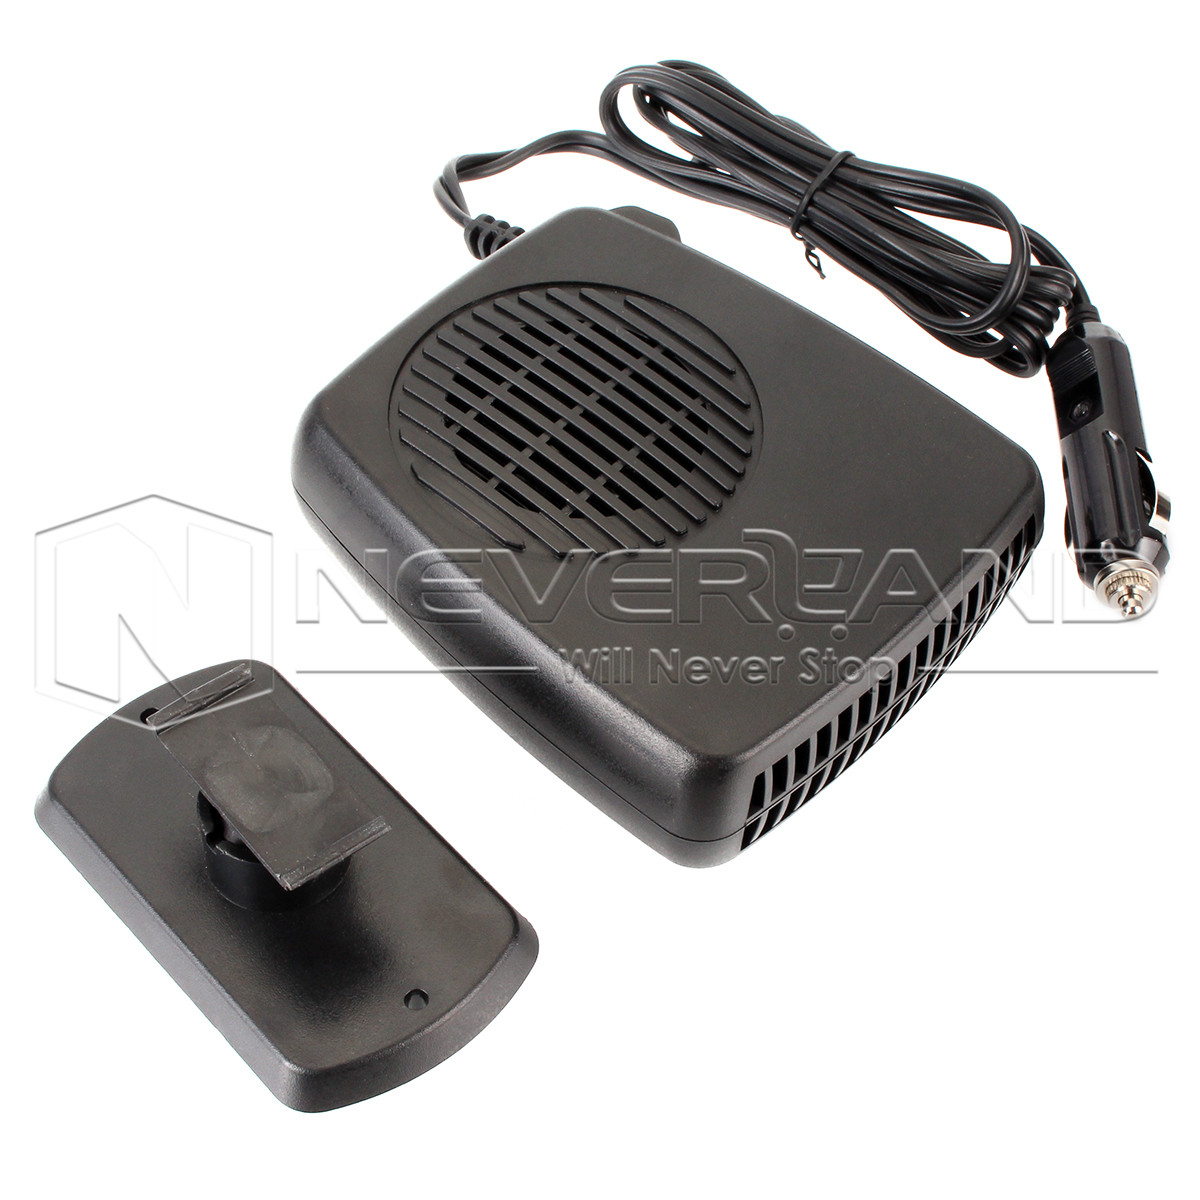 12v 200w auto car heater heating fan dryer windshield for How to defrost windshield without heat